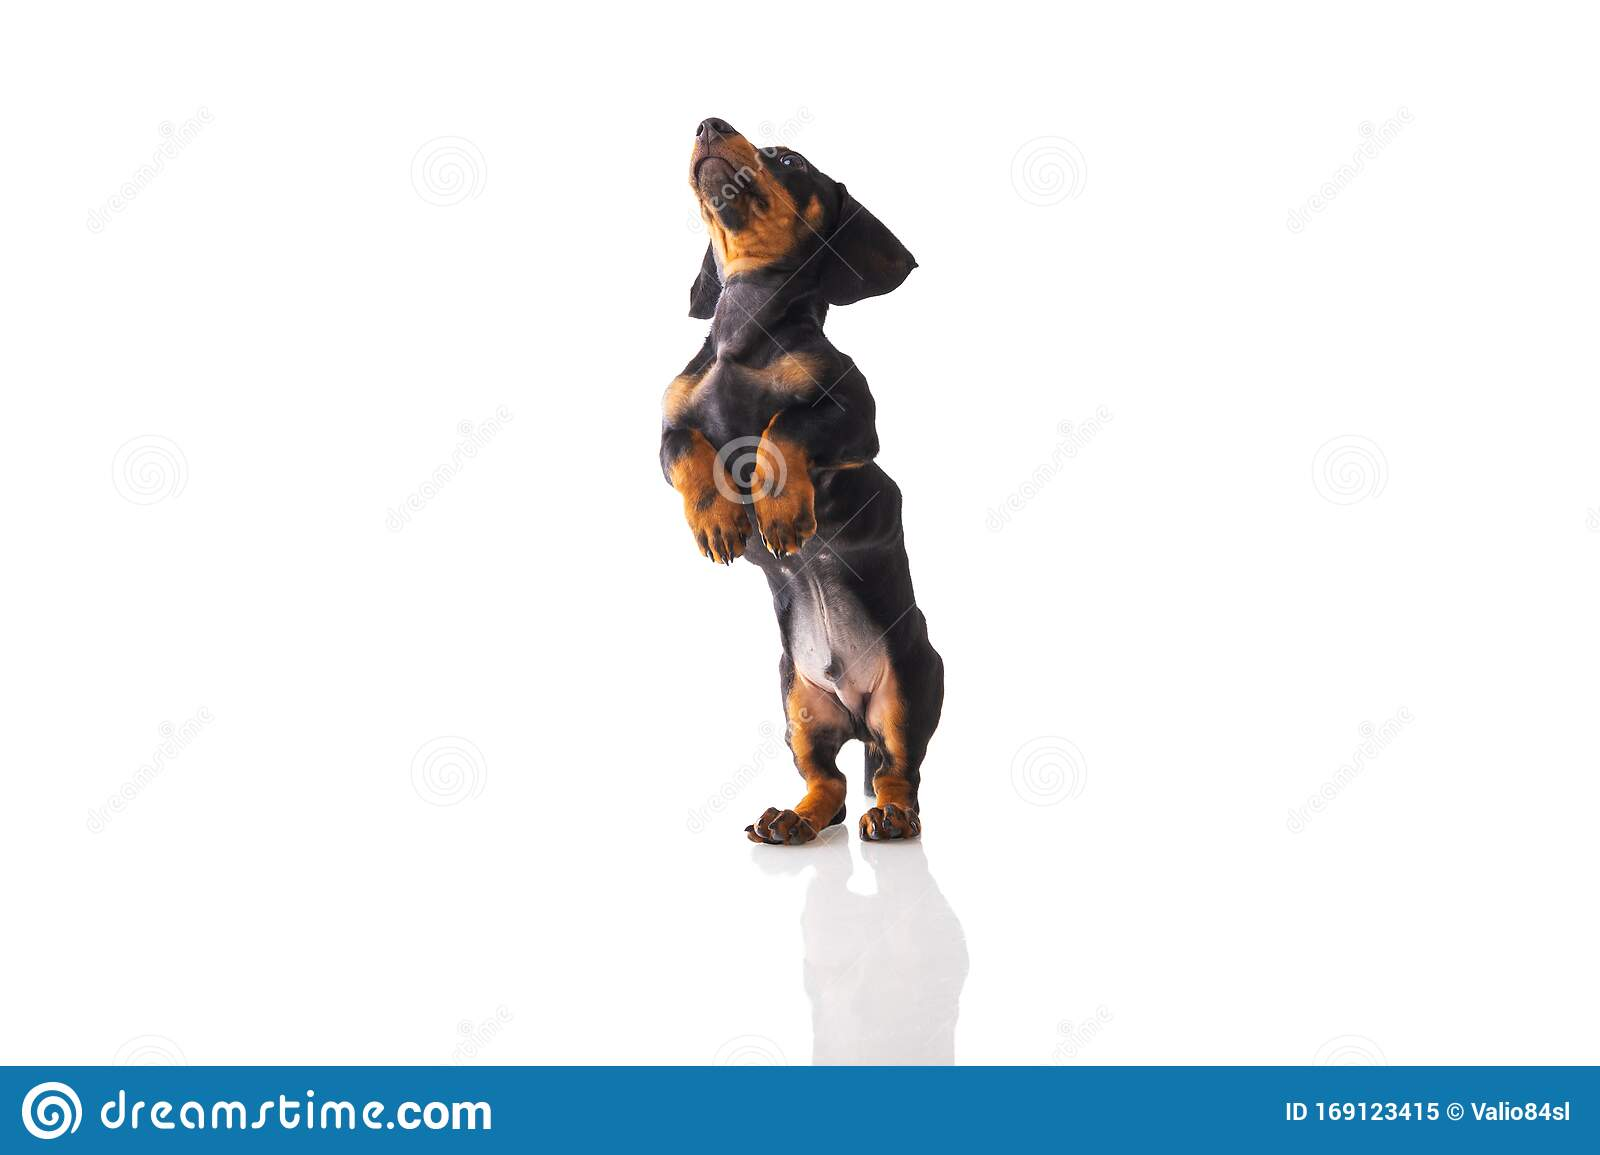 Funny Sausage Dog Dachshund Puppy Posing On White Background Stock Image Image Of Brown Grill 169123415